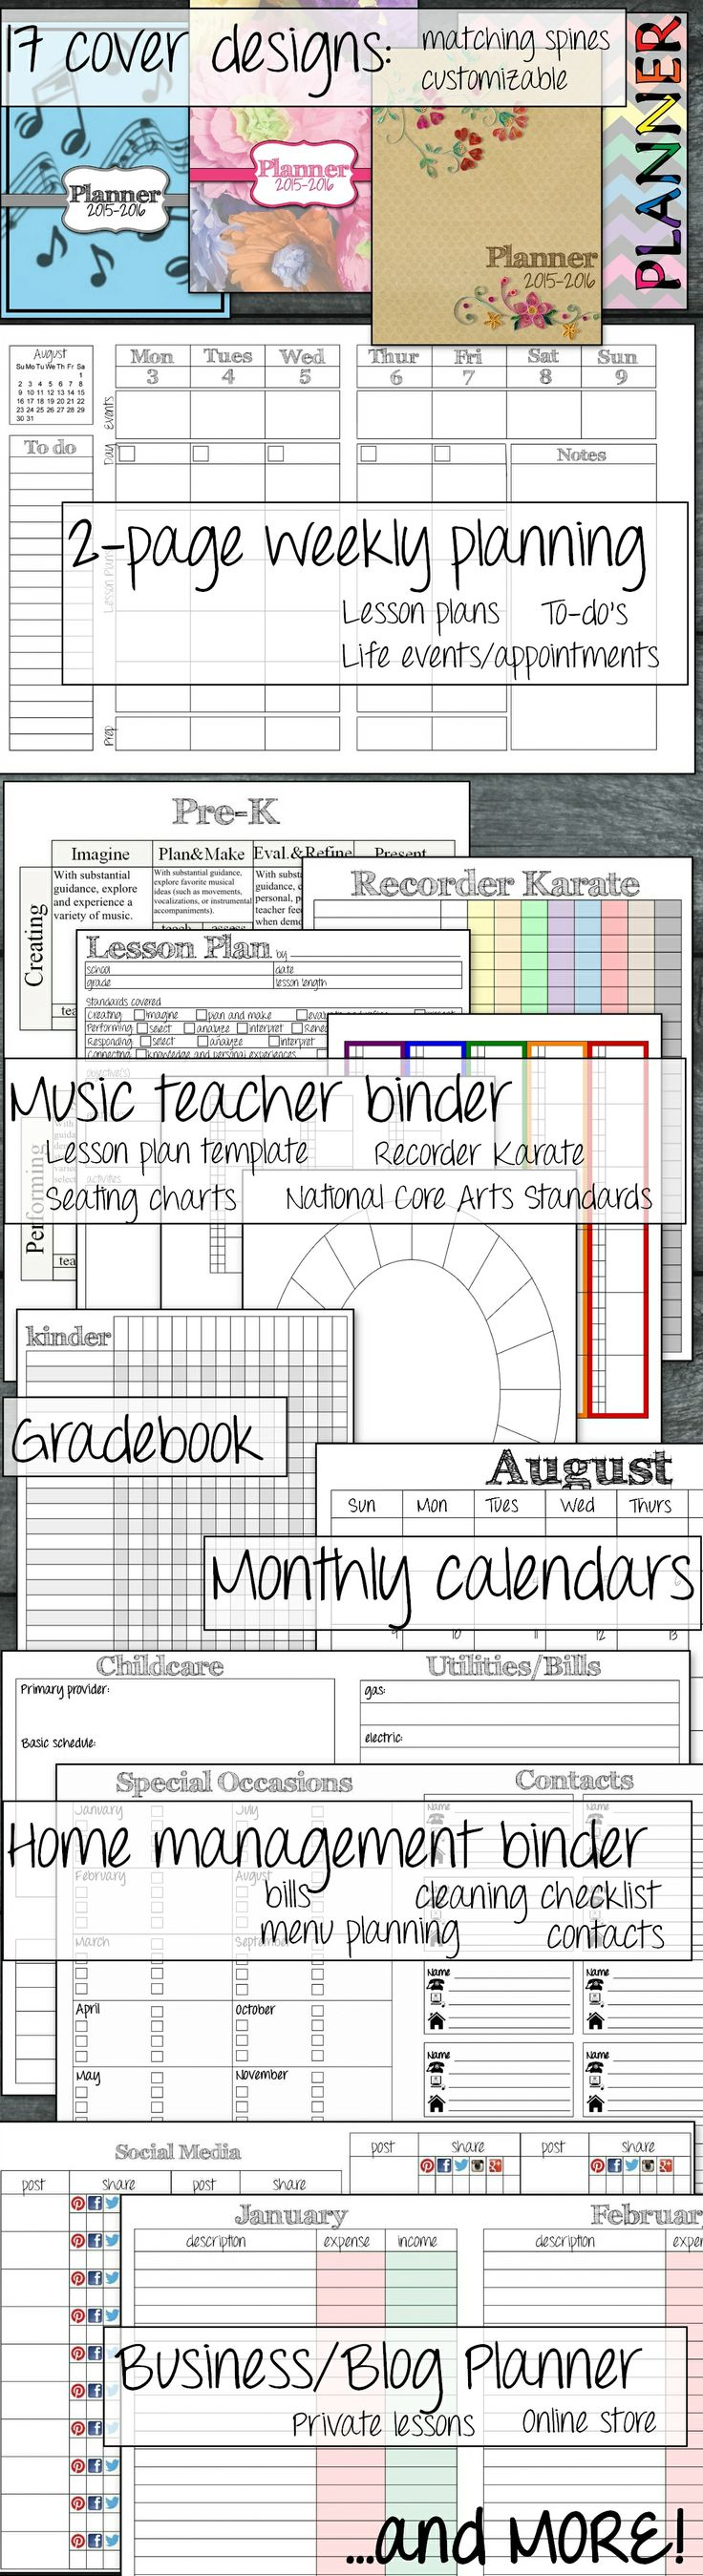 Music Teacher Entire Life Planner and Organization Binder: five lesson blocks edition. This thing is awesome! 5 lesson blocks (big enough to split) for each day with dates pre-filled for the 2015-16 school year, and it comes with organizing pages for home, business (like private lessons, TPT, or other extra income), and the music classroom (including concerts, recorder karate, IEP's, inventory, national standards, seating charts, and more!